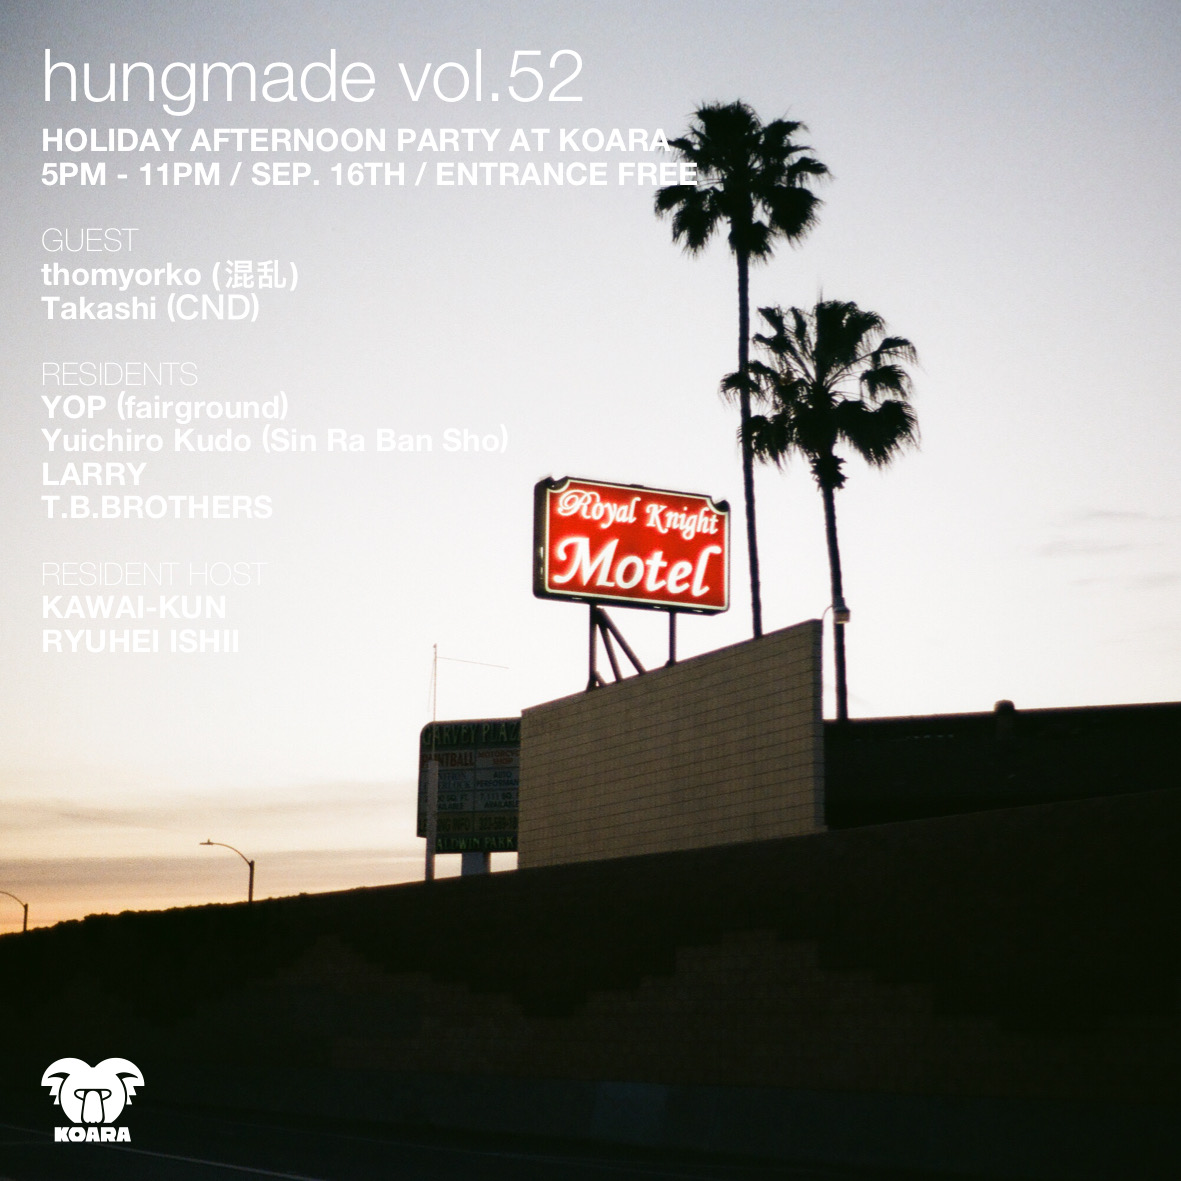 hungmade vol.52